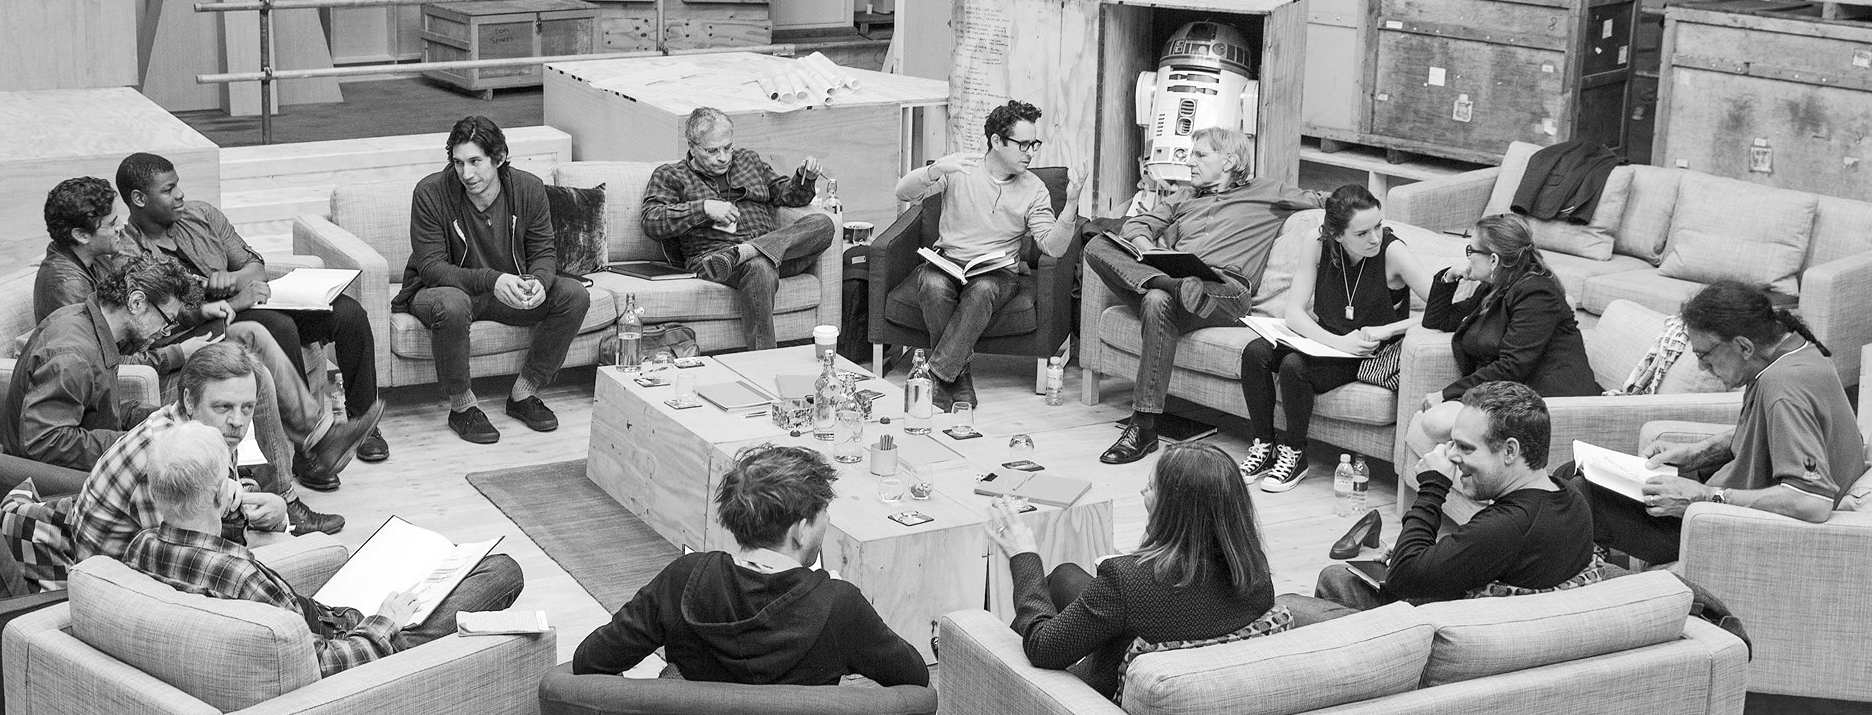 meeting of sw minds